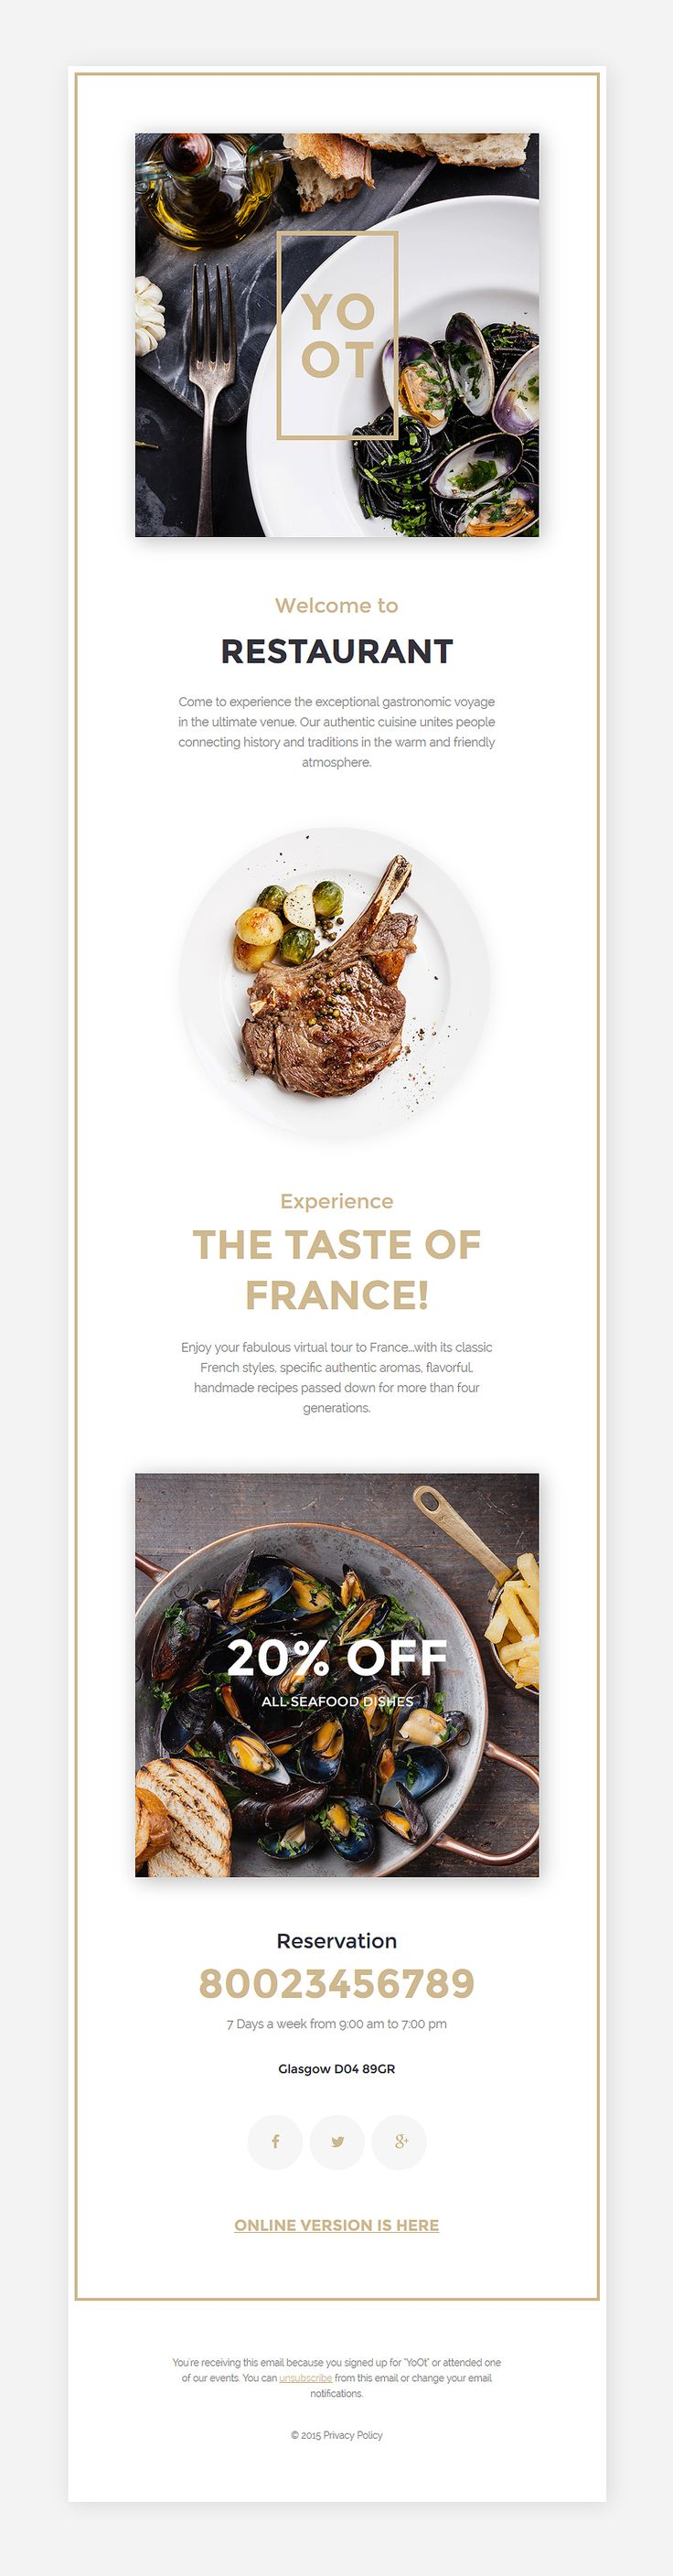 Cafe and Restaurant Responsive Newsletter Template #57614